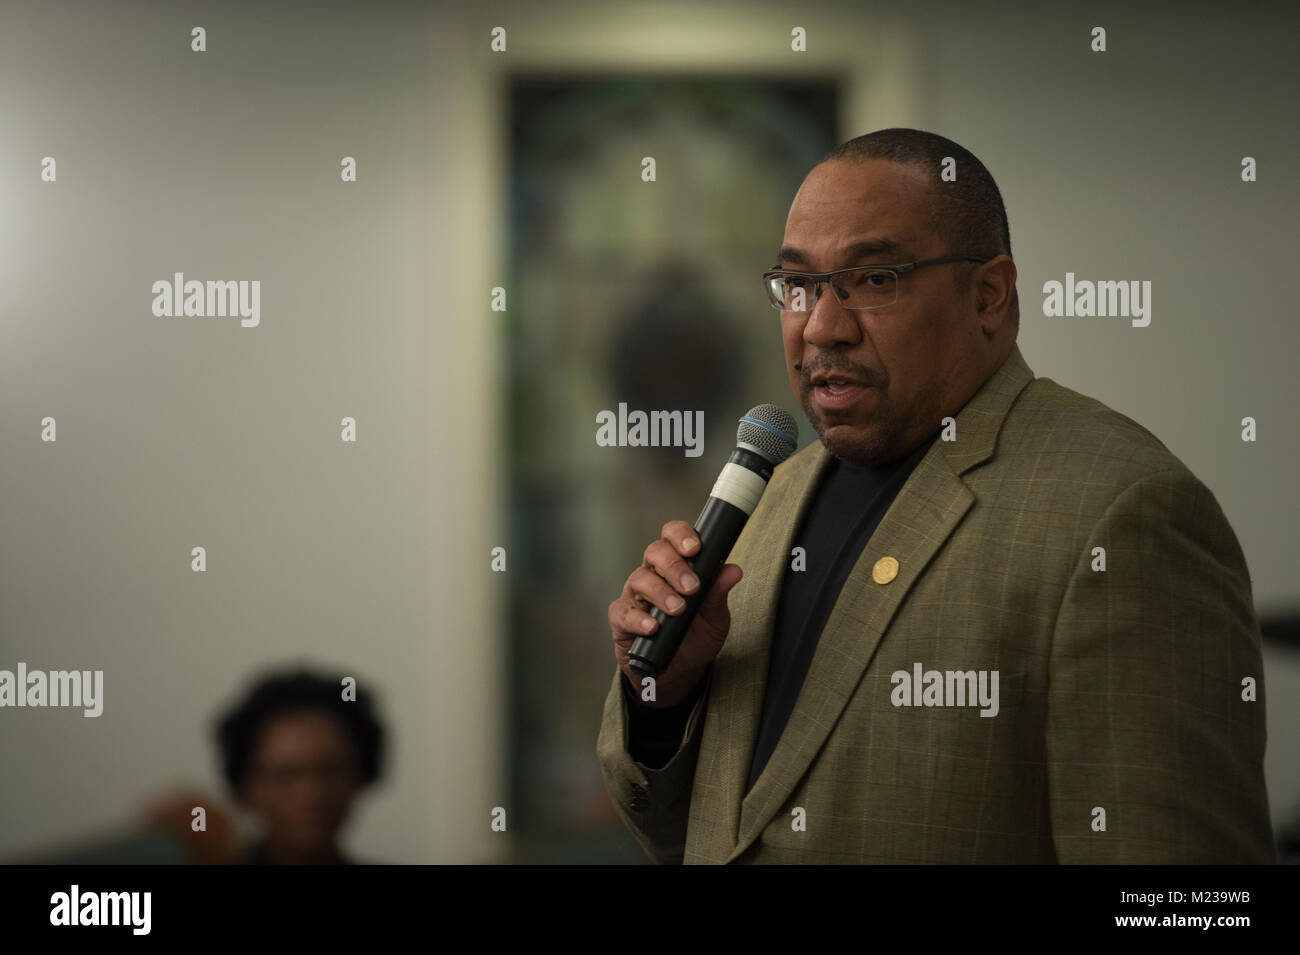 UNITED STATES: 01-22-2018: Loudoun County NAACP president Phillip Thompson addresses members of the NAACP before - Stock Image